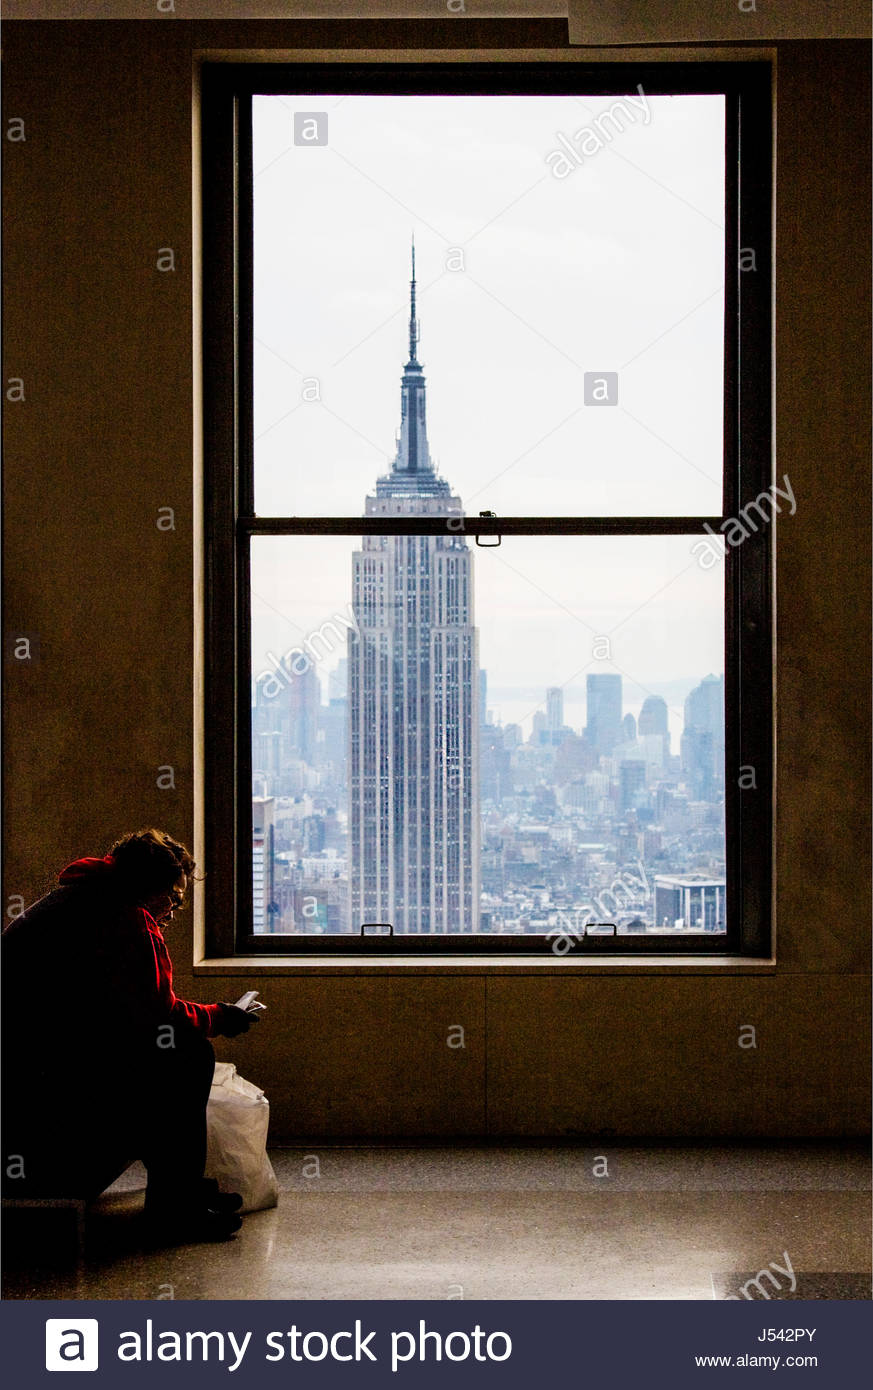 a-view-of-the-empire-state-building-thro